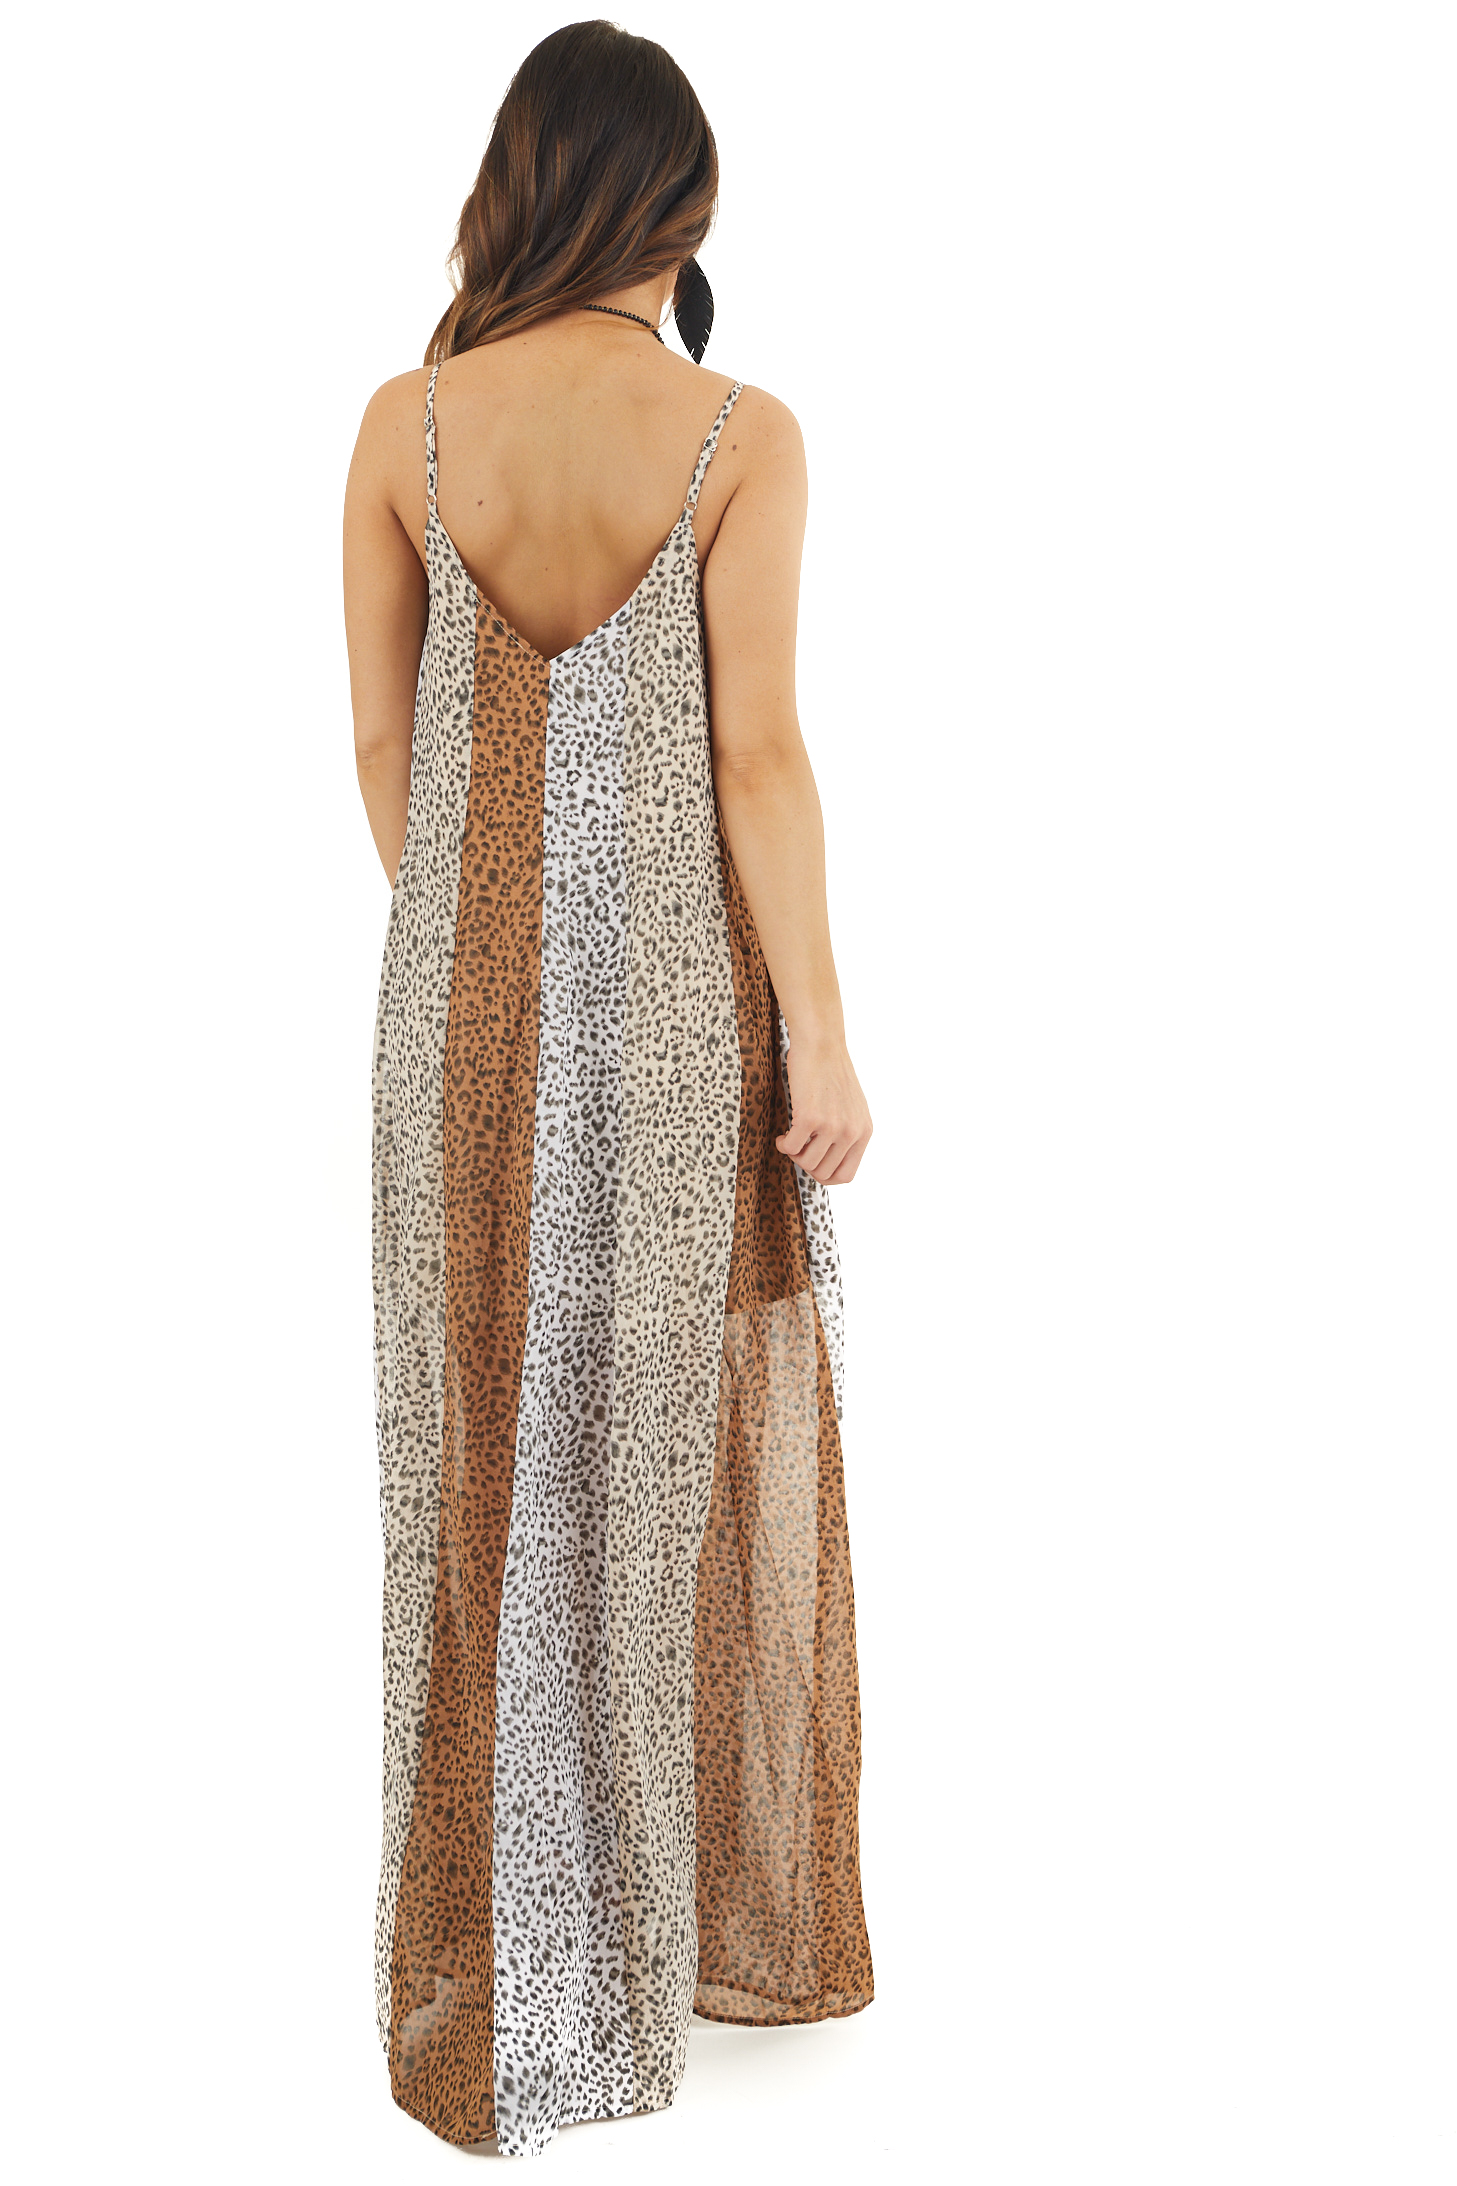 Sand and Charcoal Animal Print Color Block Maxi Dress